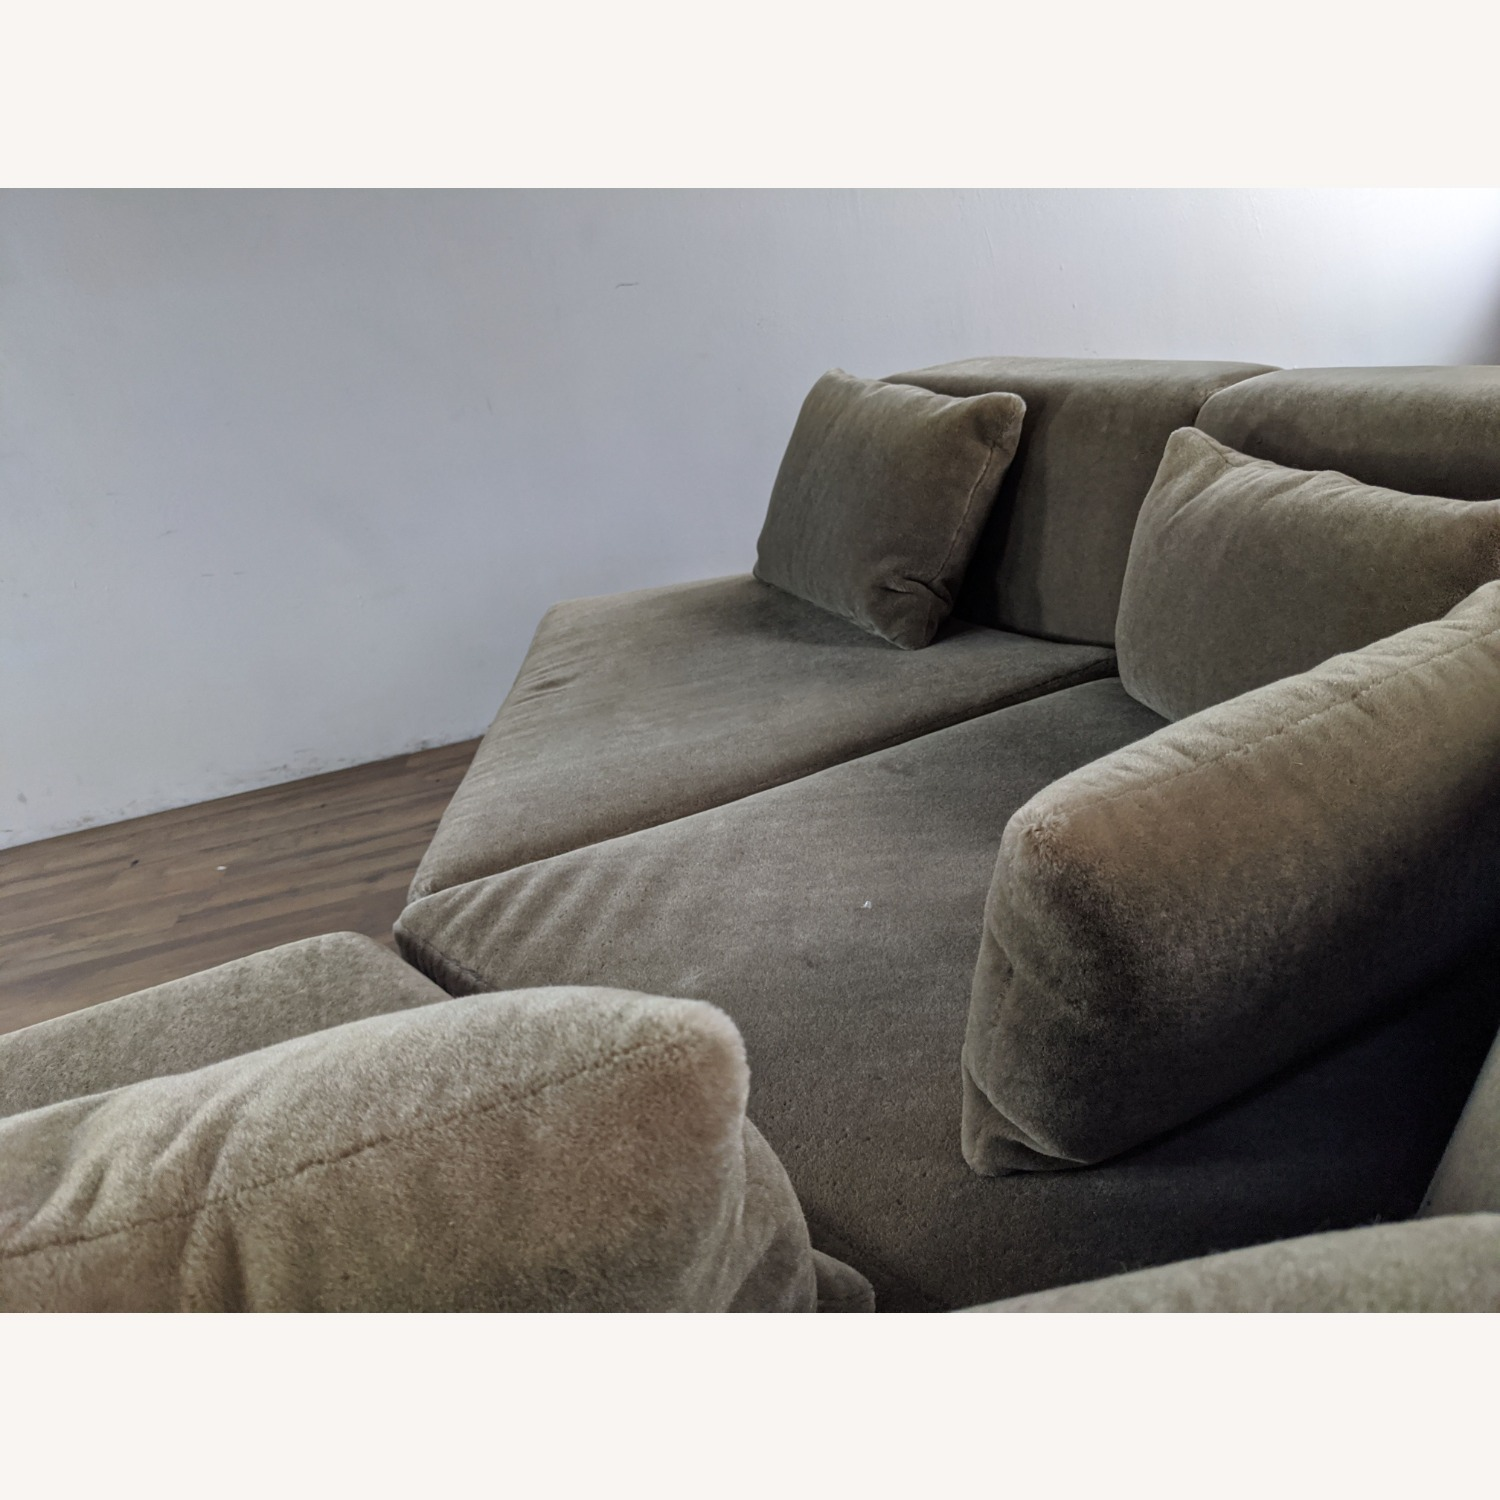 Phase Design Pangea Sectional Sofa in Gray Mohair - image-2